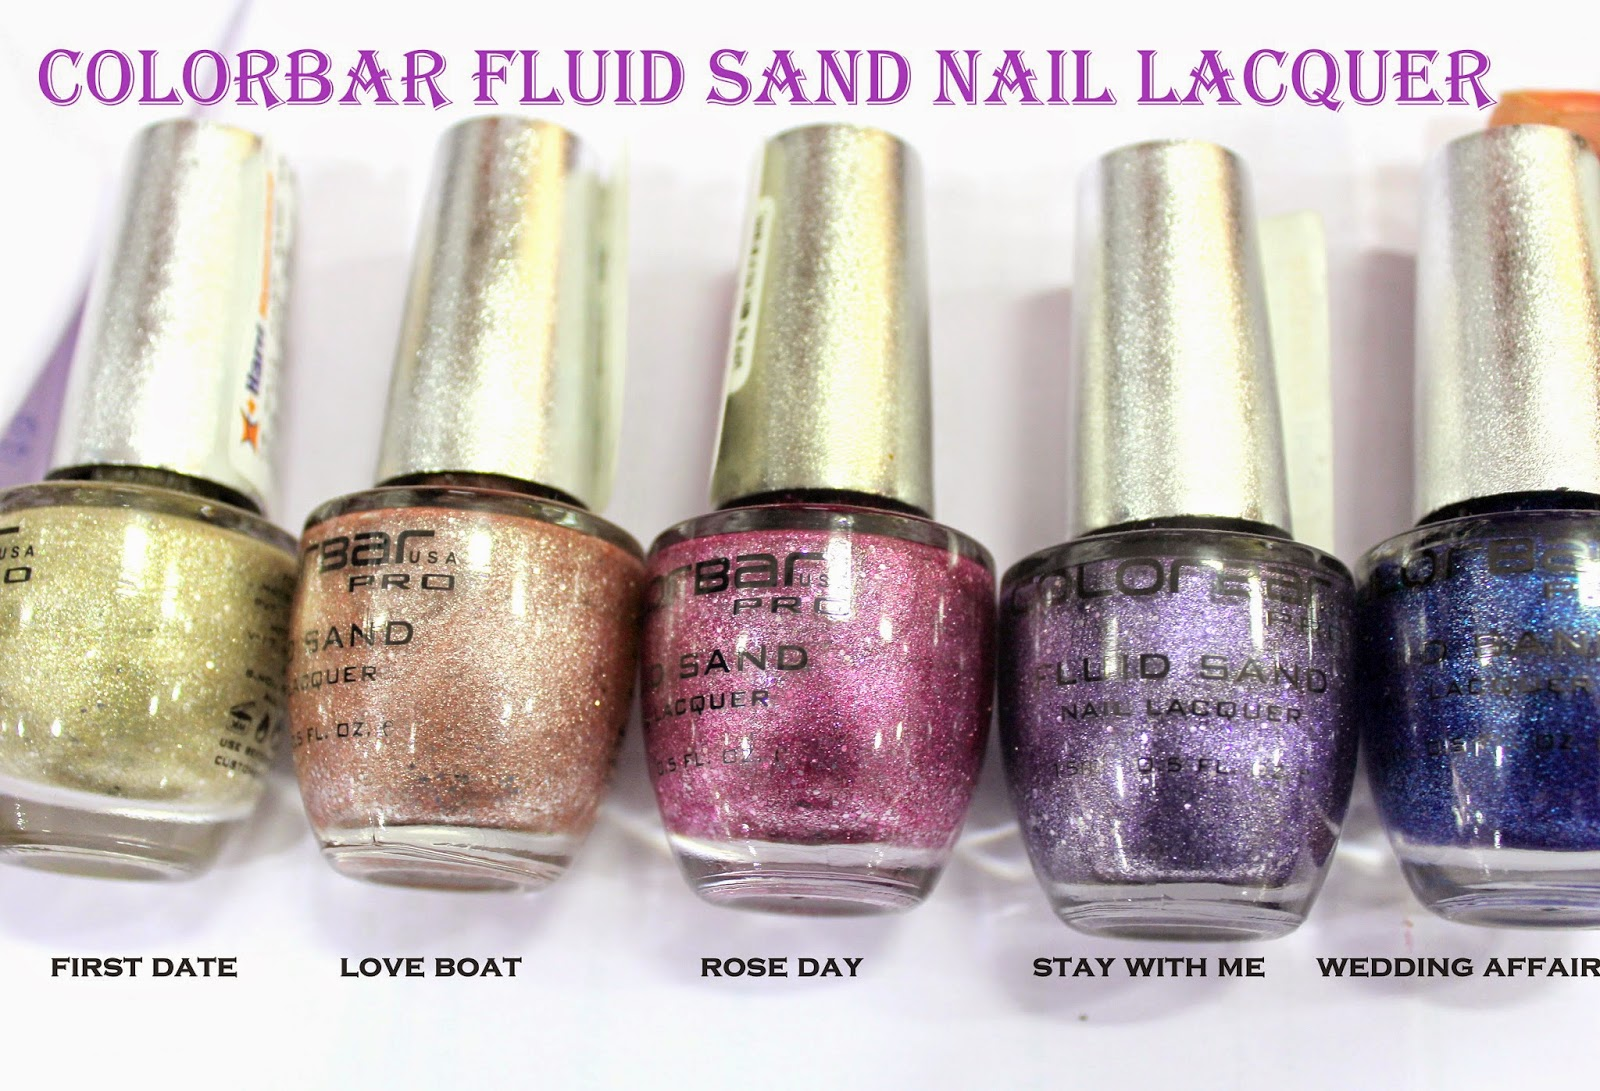 COLORBAR FLUID SAND NAIL LACQUERS( NEW LAUNCHES 2014)